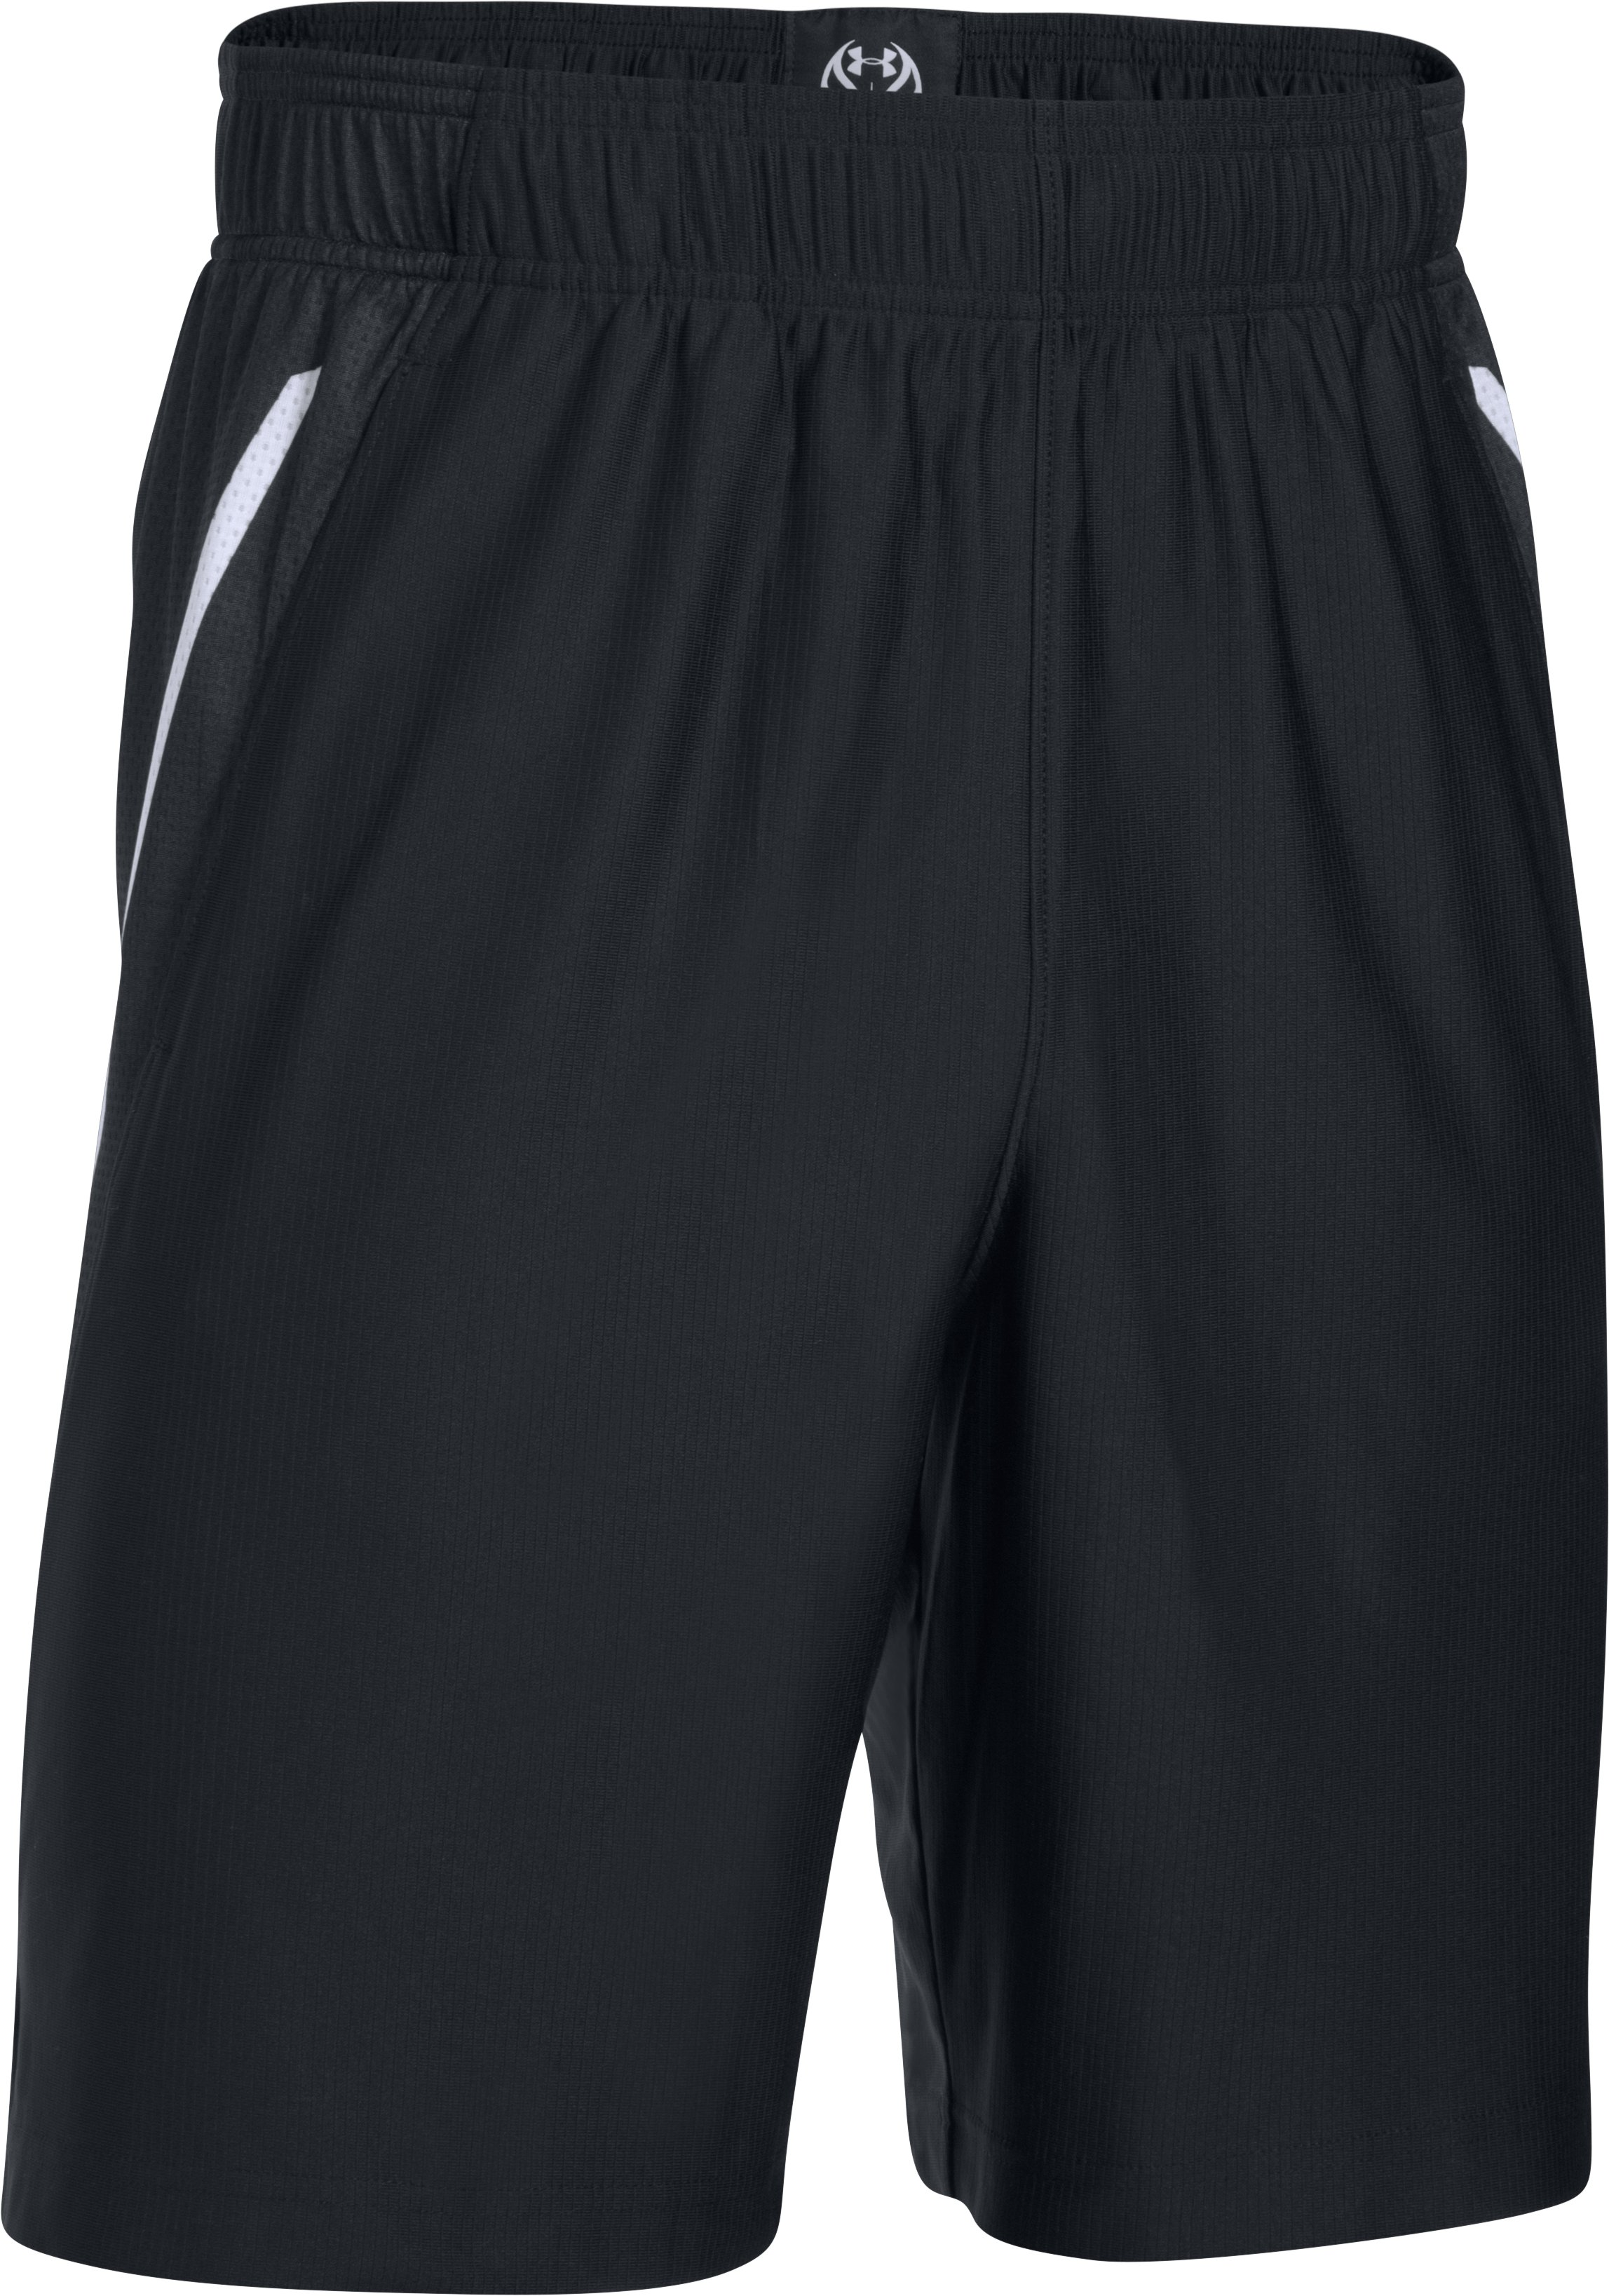 "Men's UA Team 9"" Shorts, Black ,"